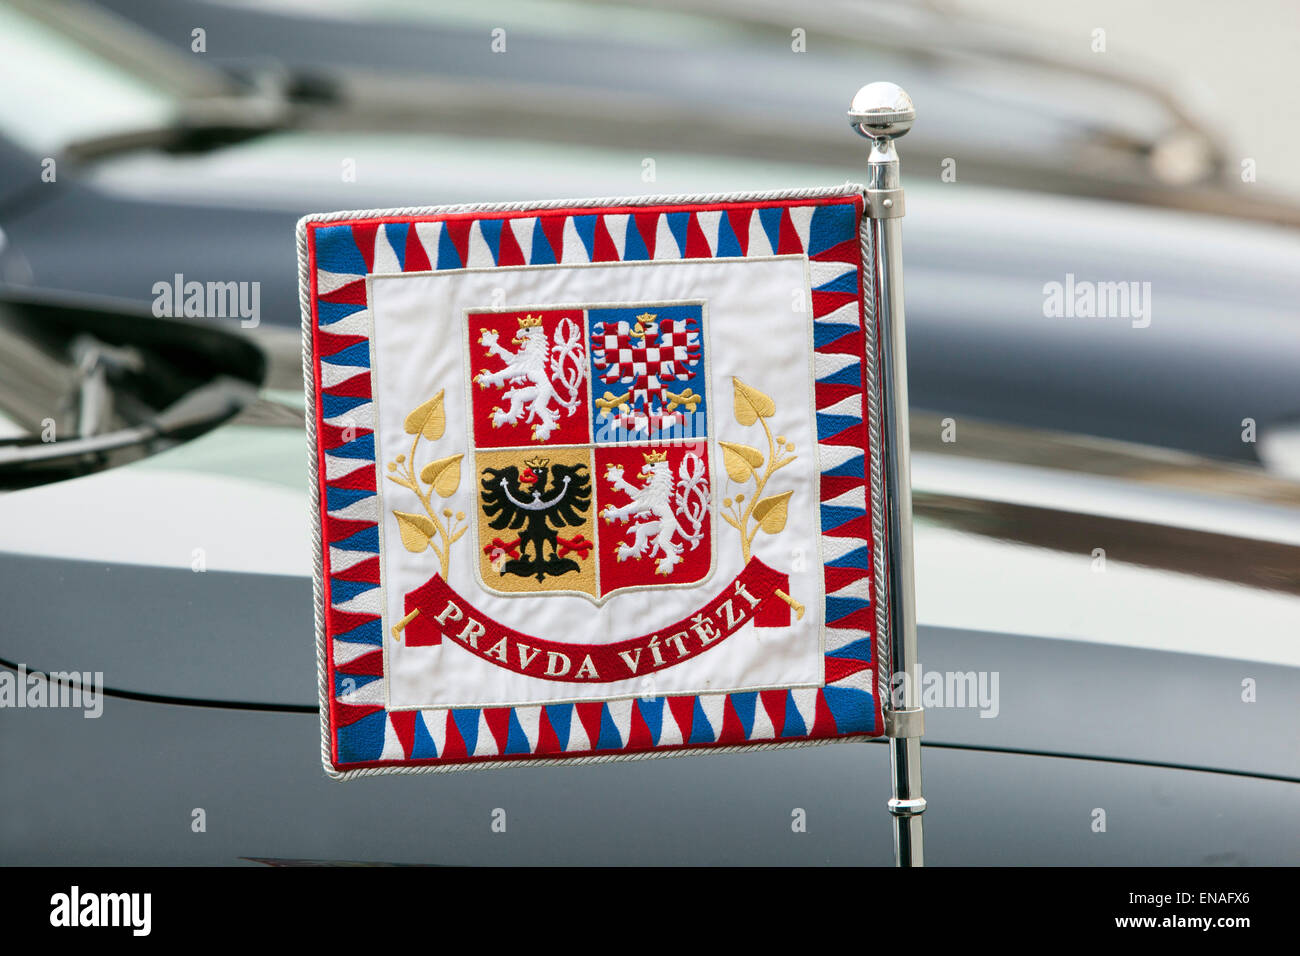 President of the Czech Republic banner with the inscription Pravda vitezi - The Truth wins, state symbol of CR - Stock Image